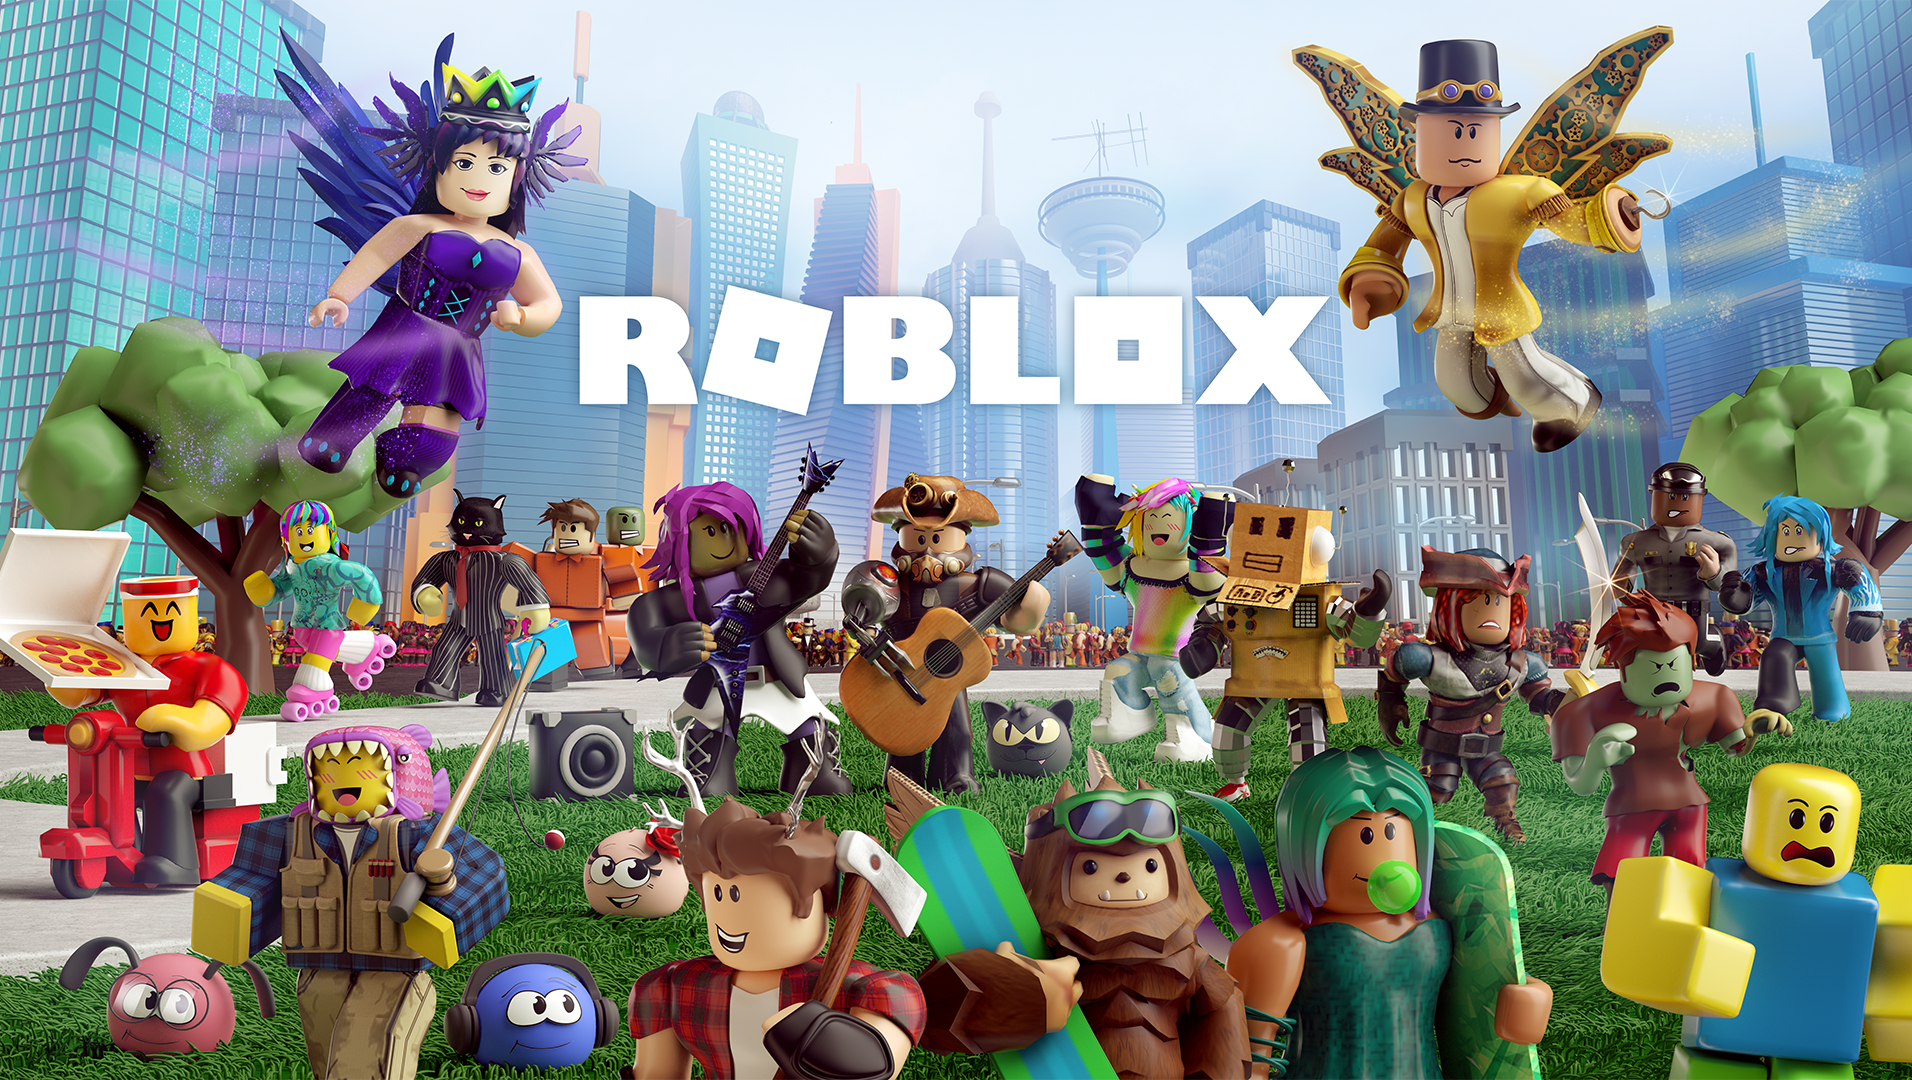 roblox kids game shows character being sexually violated